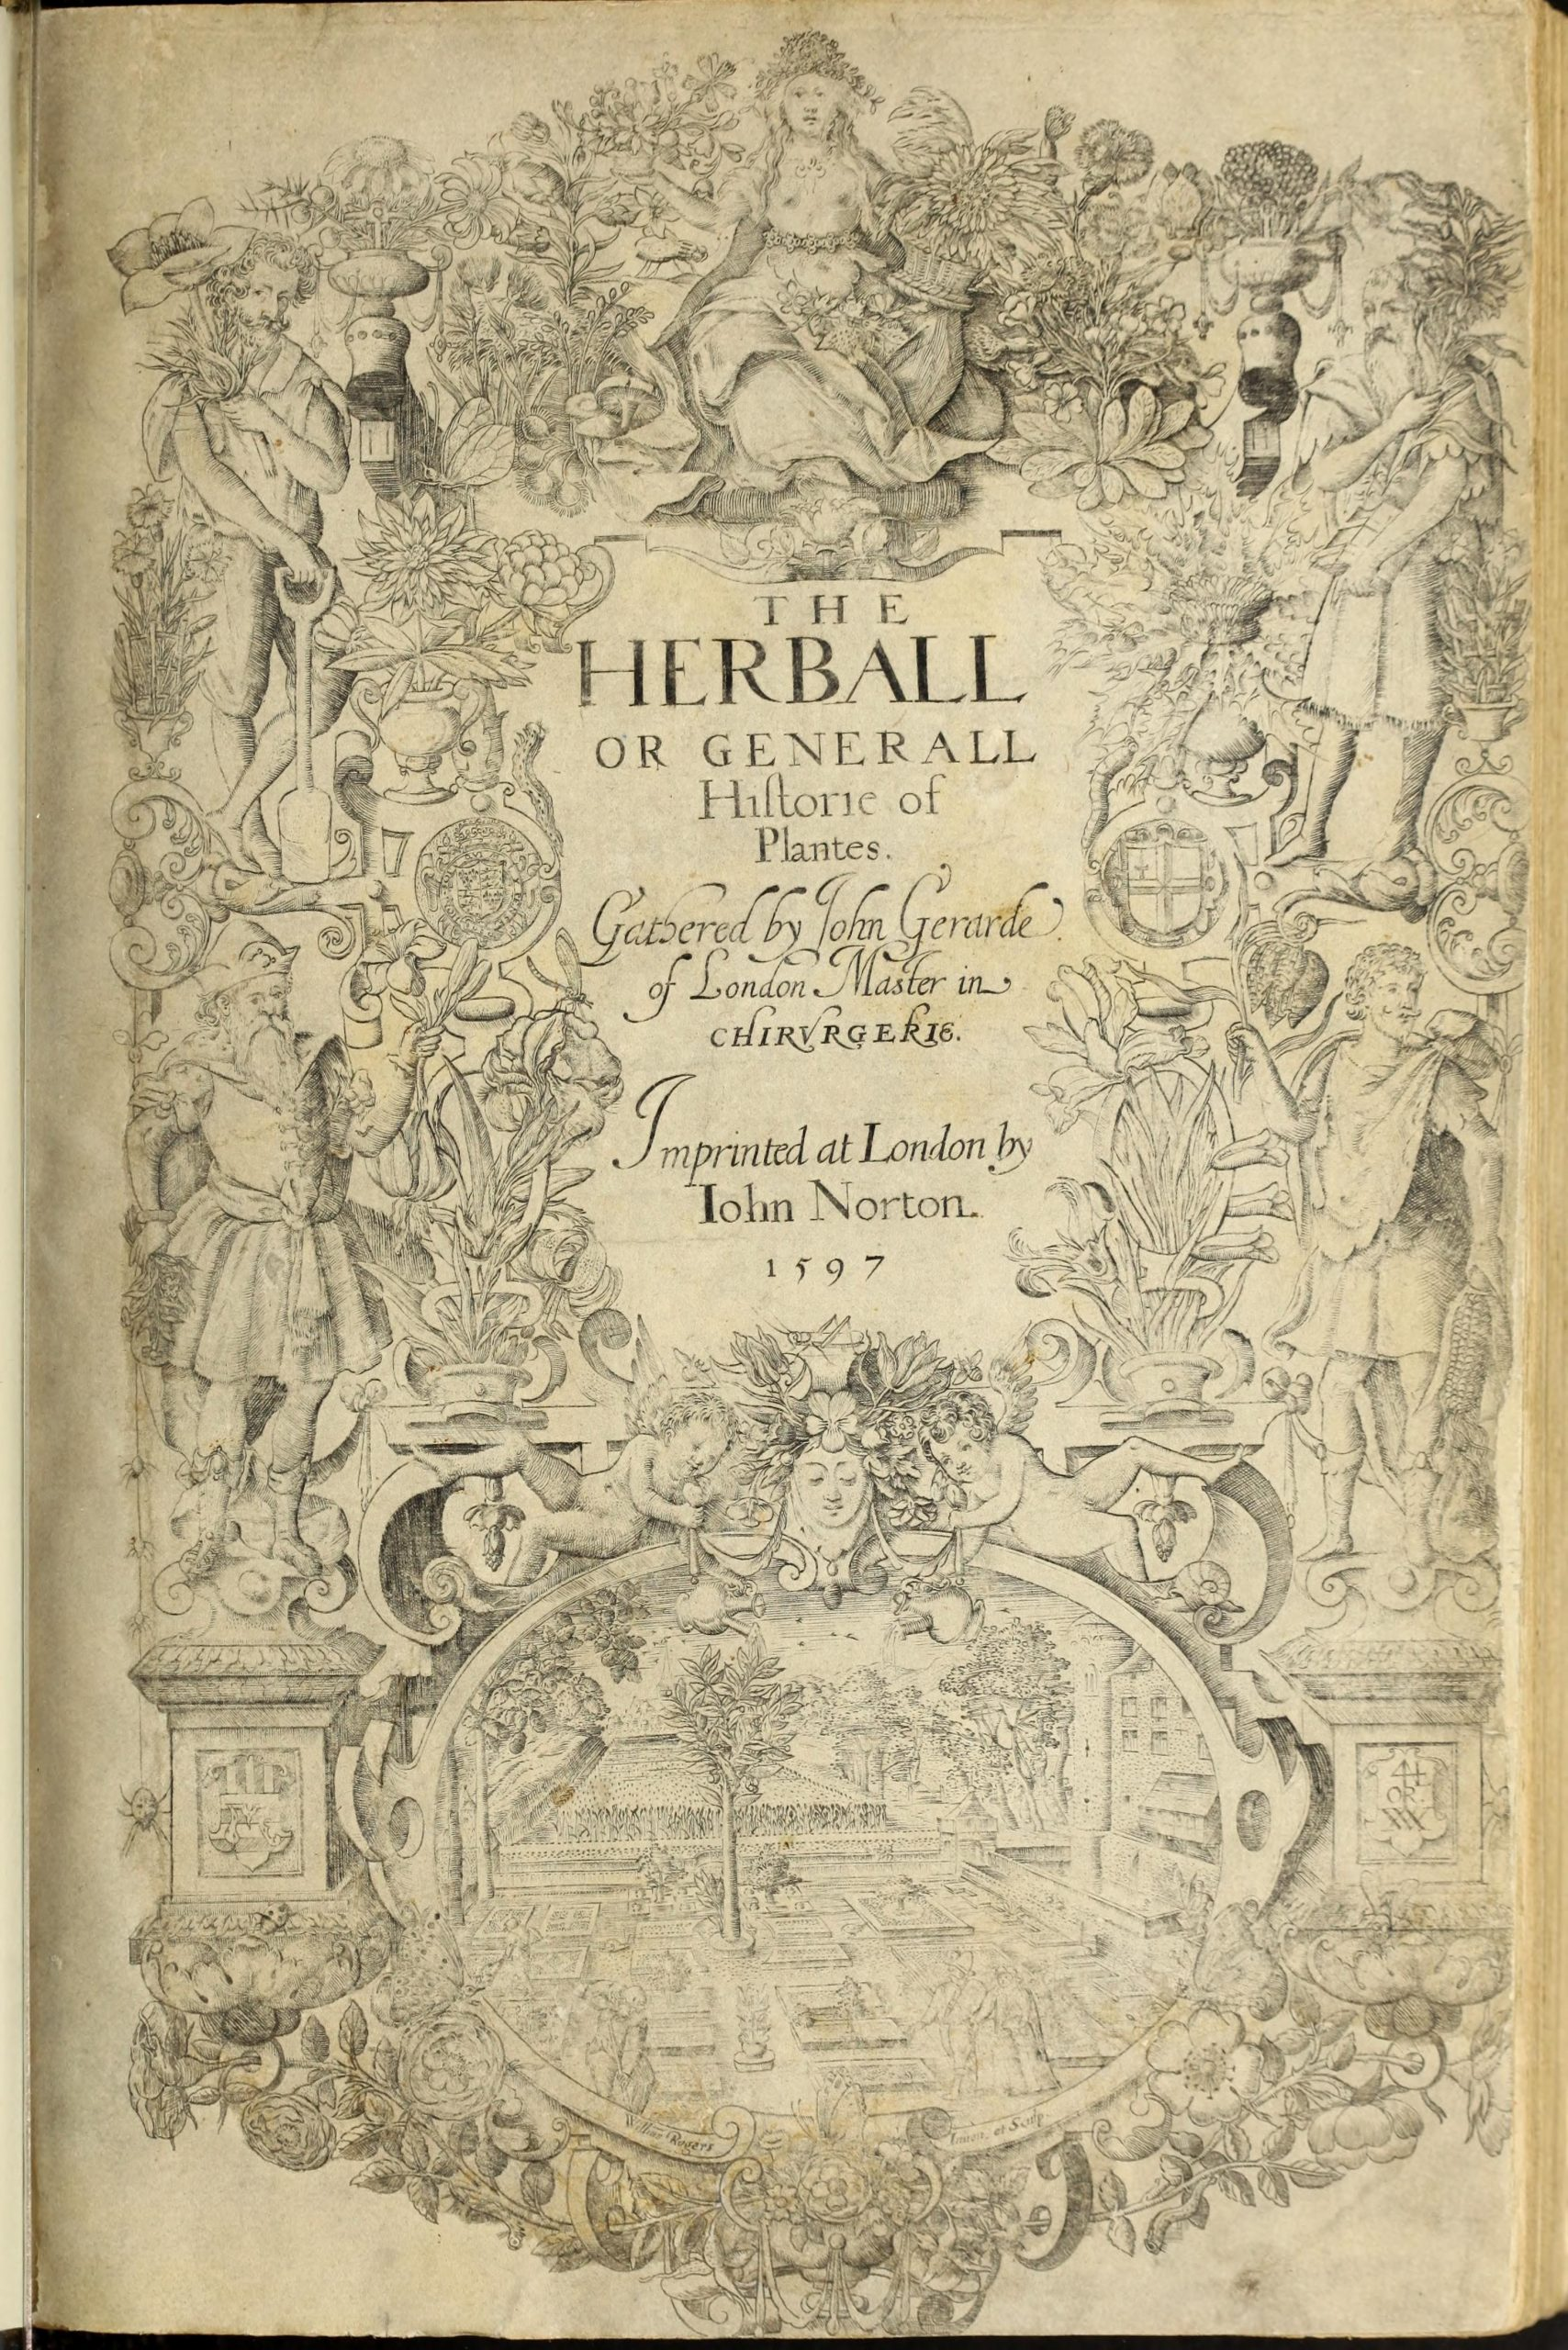 Ornate black and white title page depicting a garden scene, two cherubs, four gentlemen, and a female figure